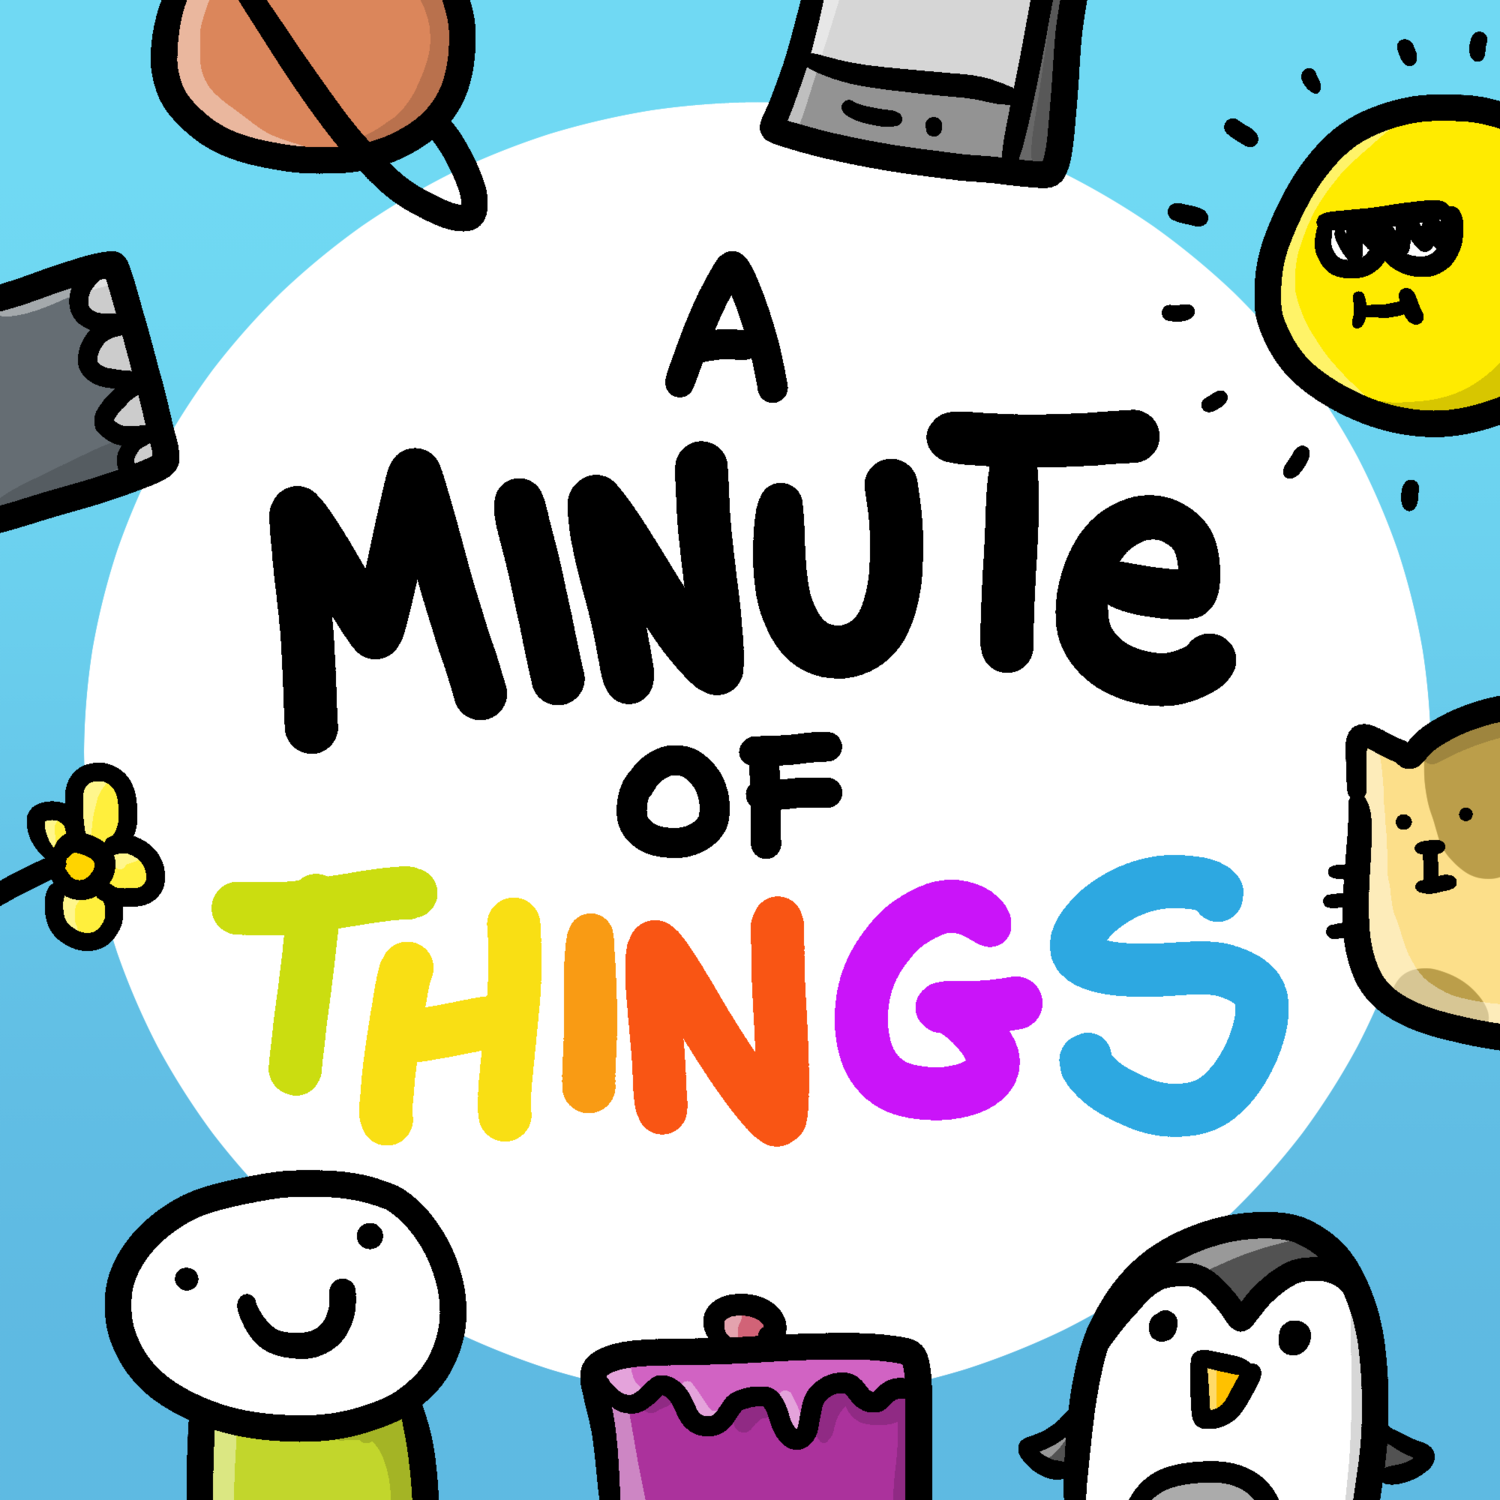 A Minute of Things